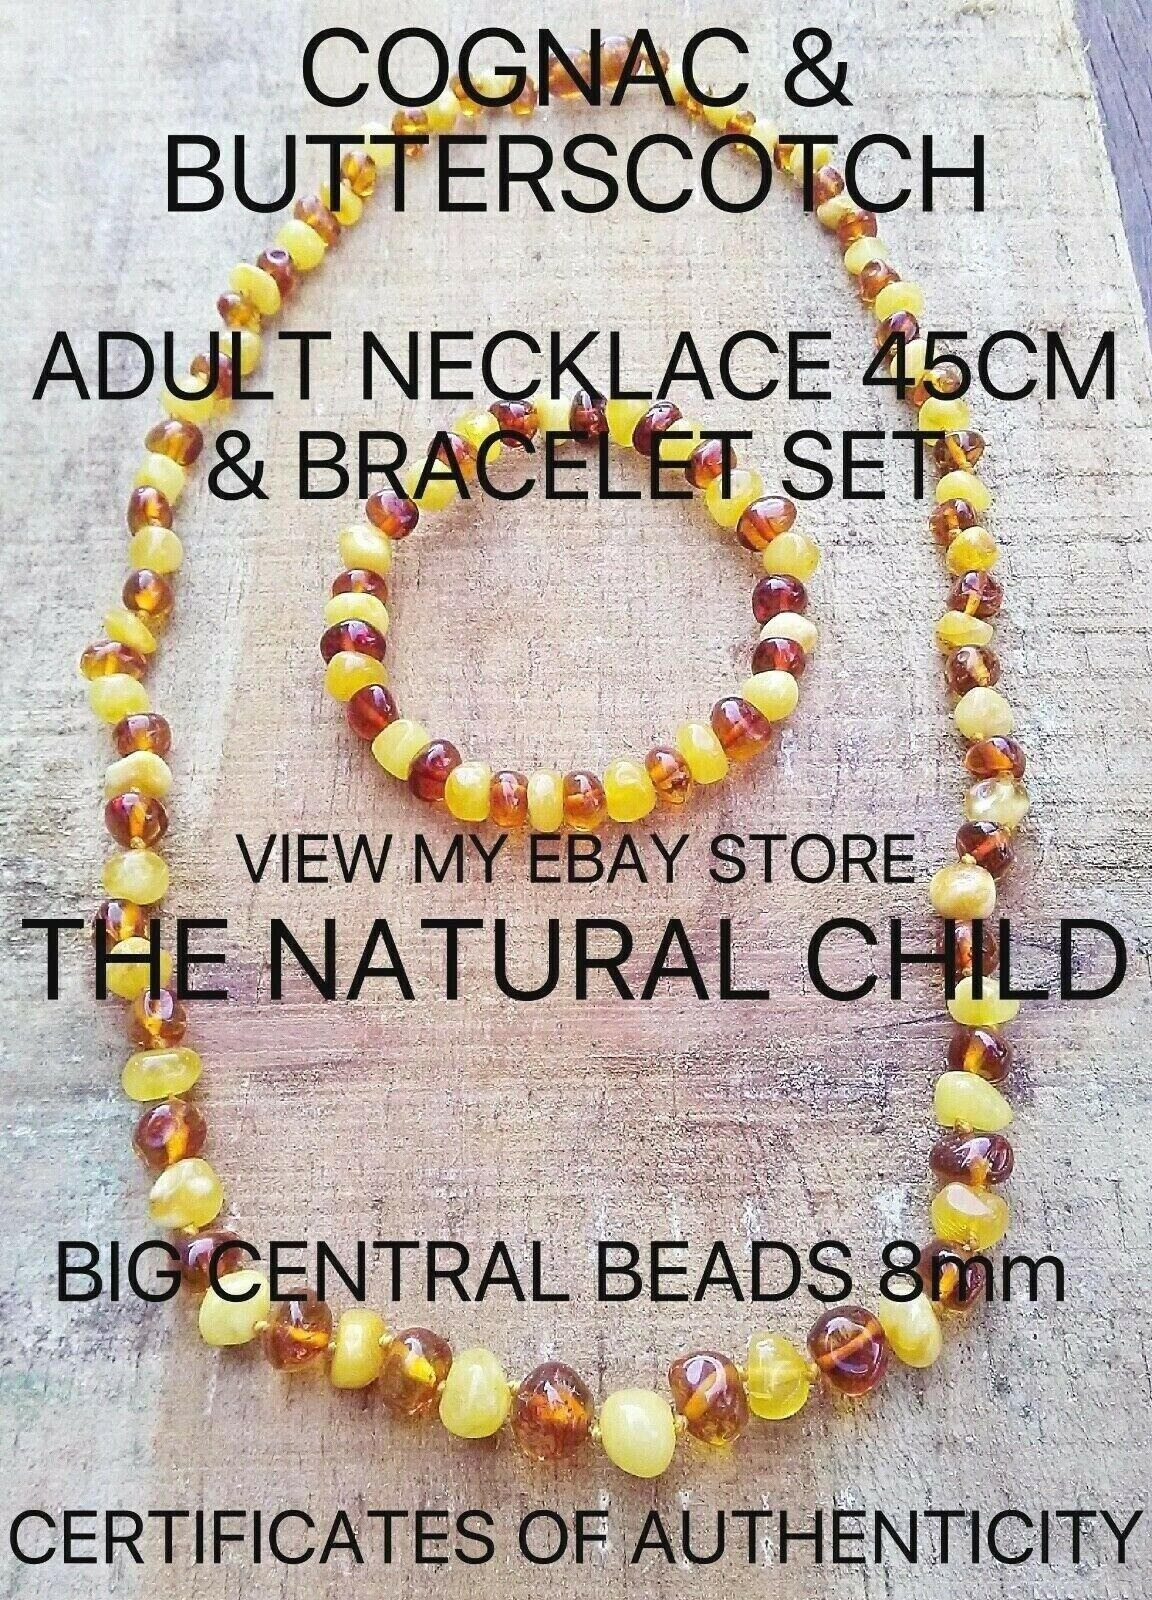 COGNAC & BUTTERSCOTCH BALTIC AMBER ADULT SET BIG BEADS Jewellery Beads FREE POST